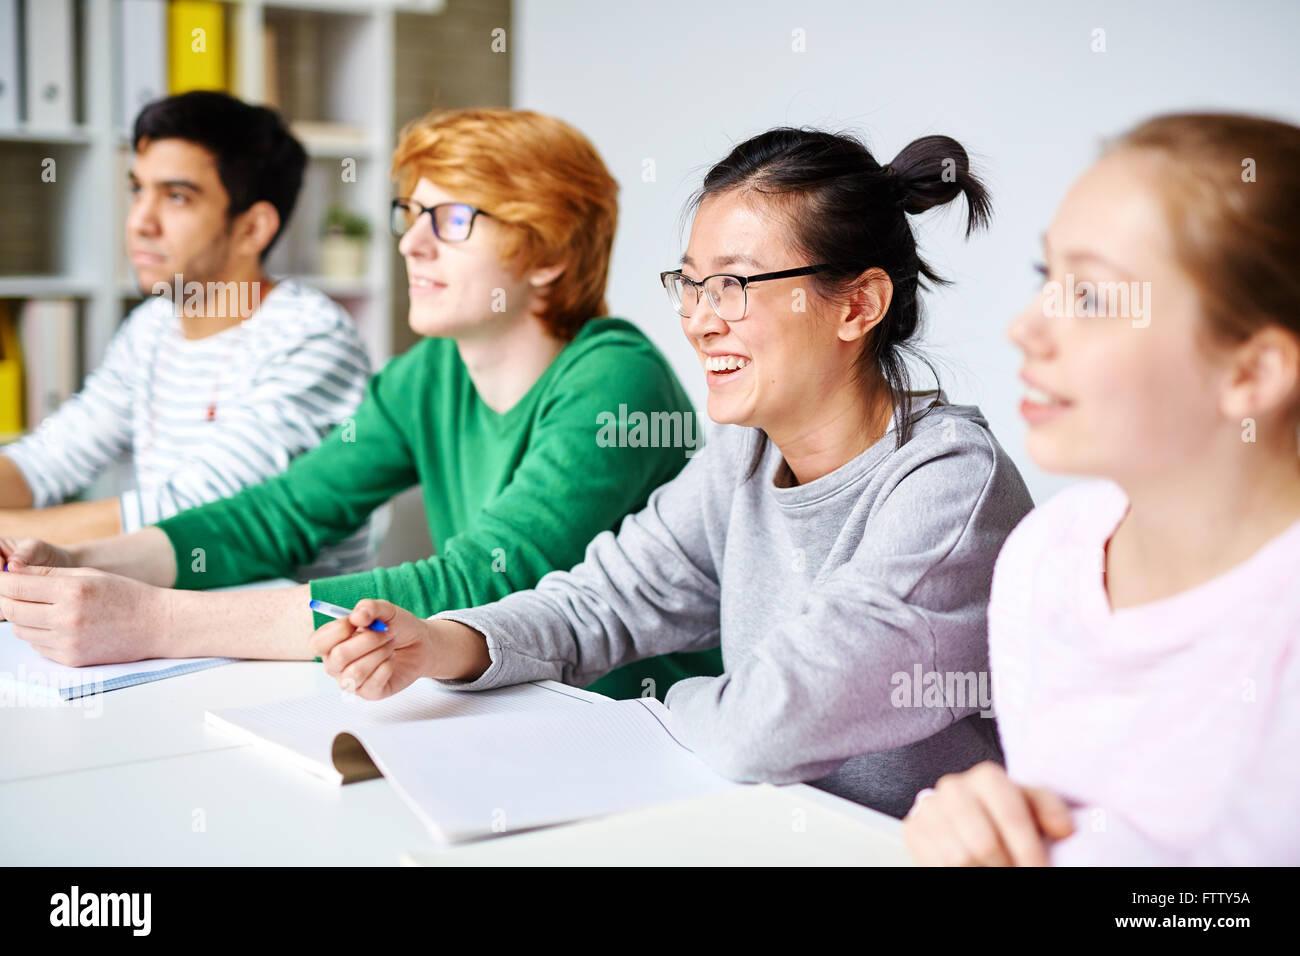 Students at lesson - Stock Image